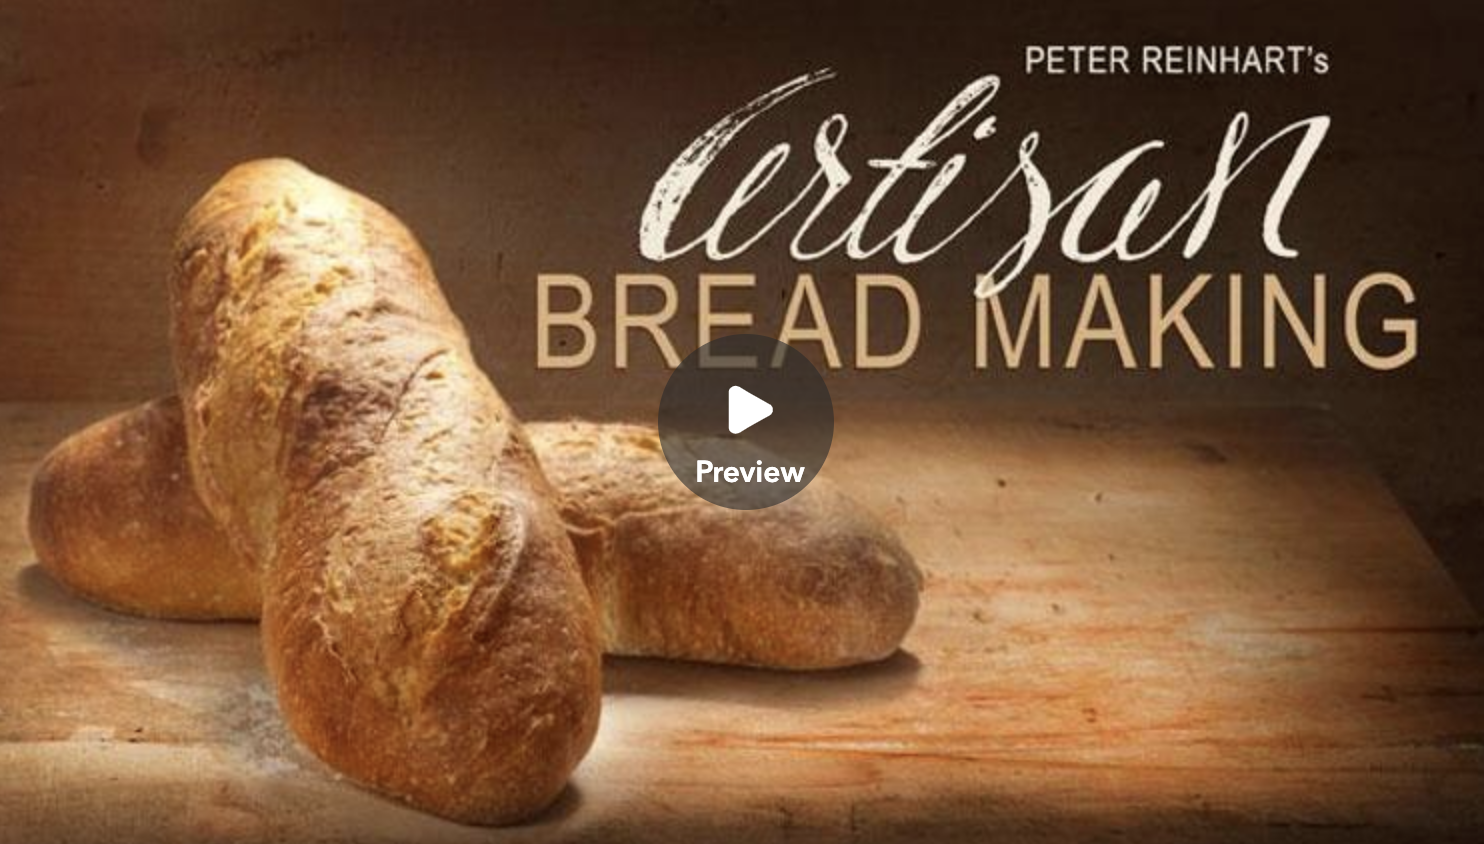 bluprint crafts artisan bread making course